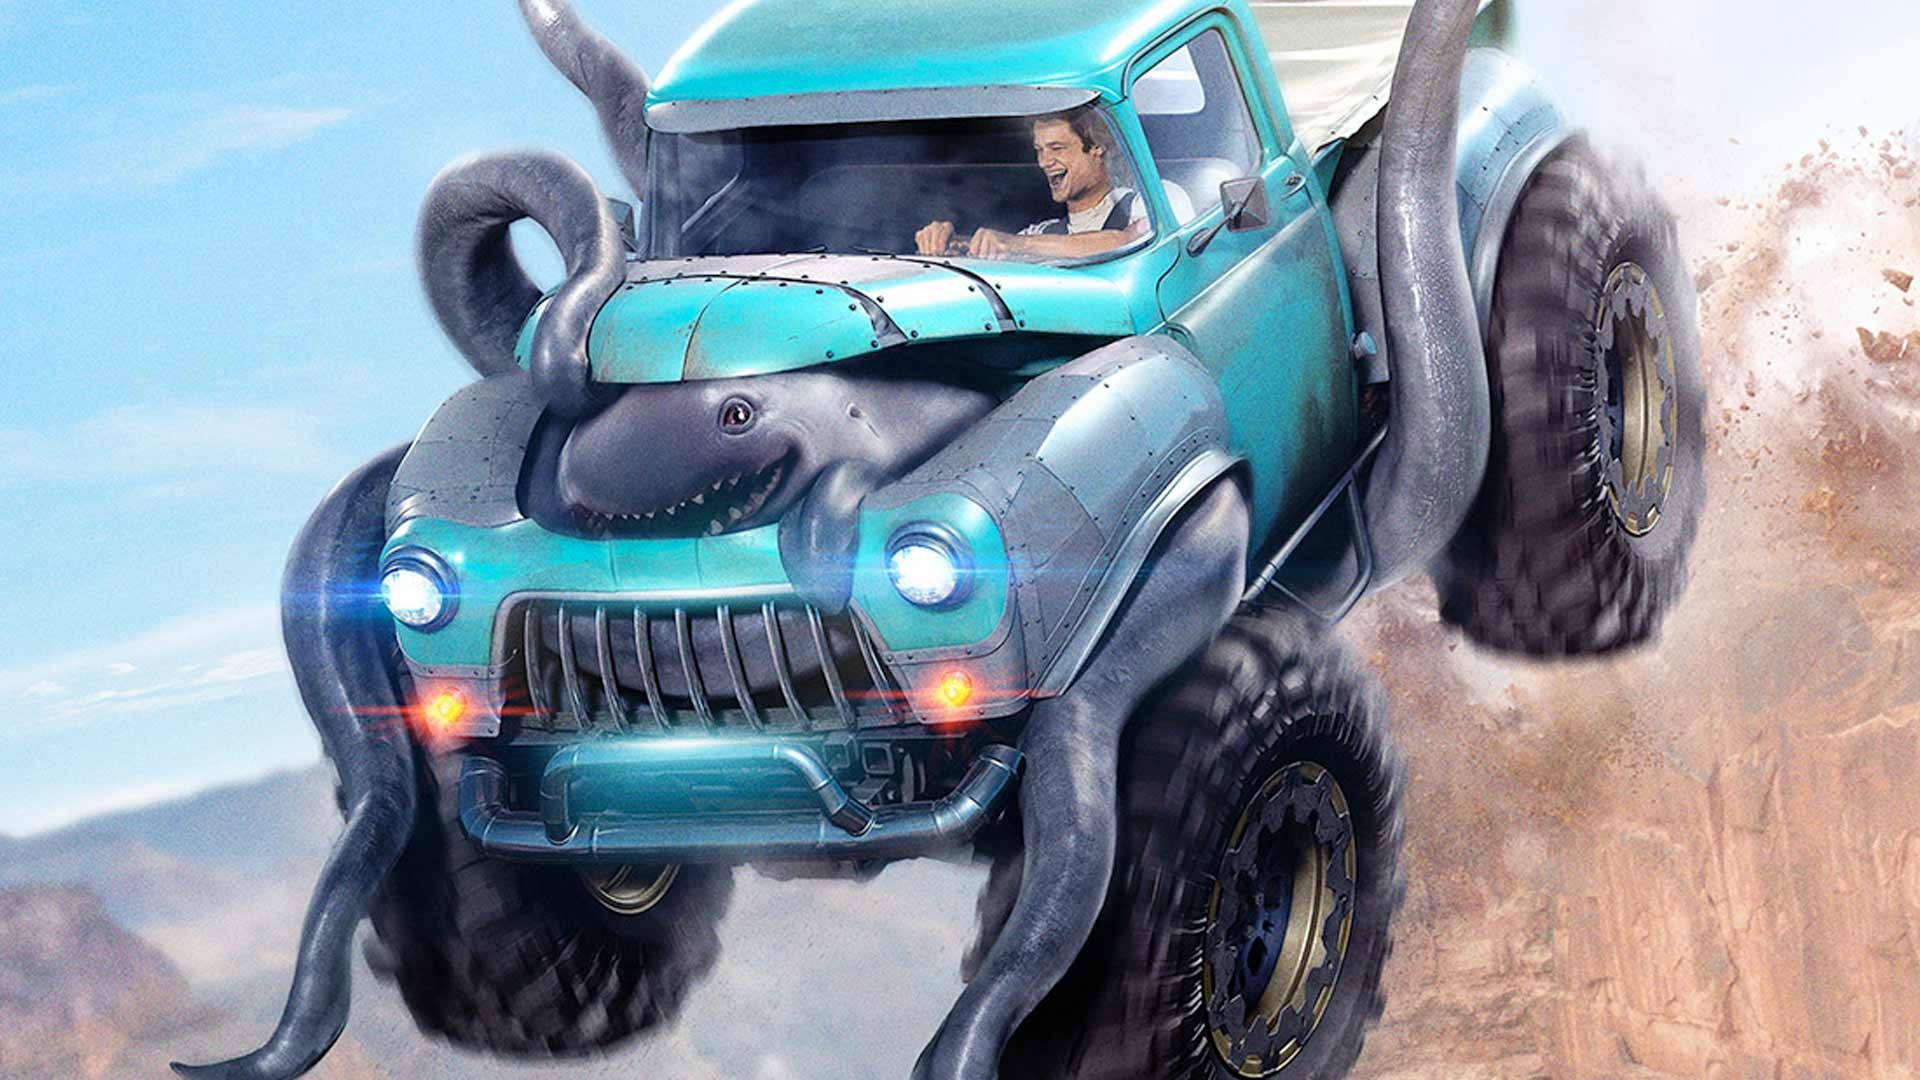 Watch Monster Trucks 2017 Streaming Online For Free Download Digital Hd Movies Online Free Monster Trucks Movie Monster Trucks Monster